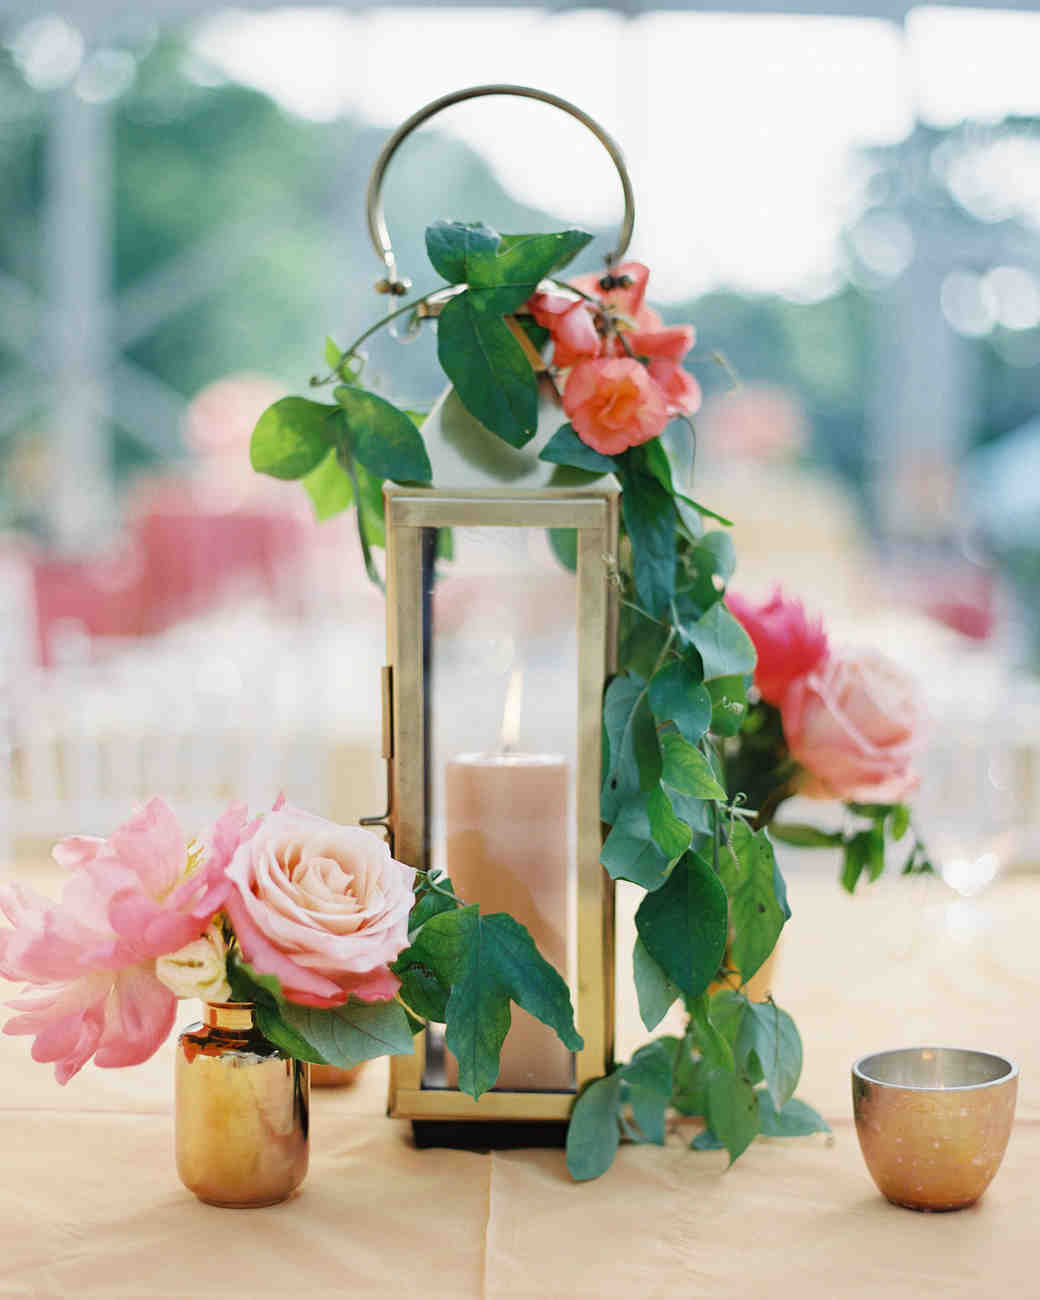 Flower Arrangement Ideas For Weddings: 36 Simple Wedding Centerpieces